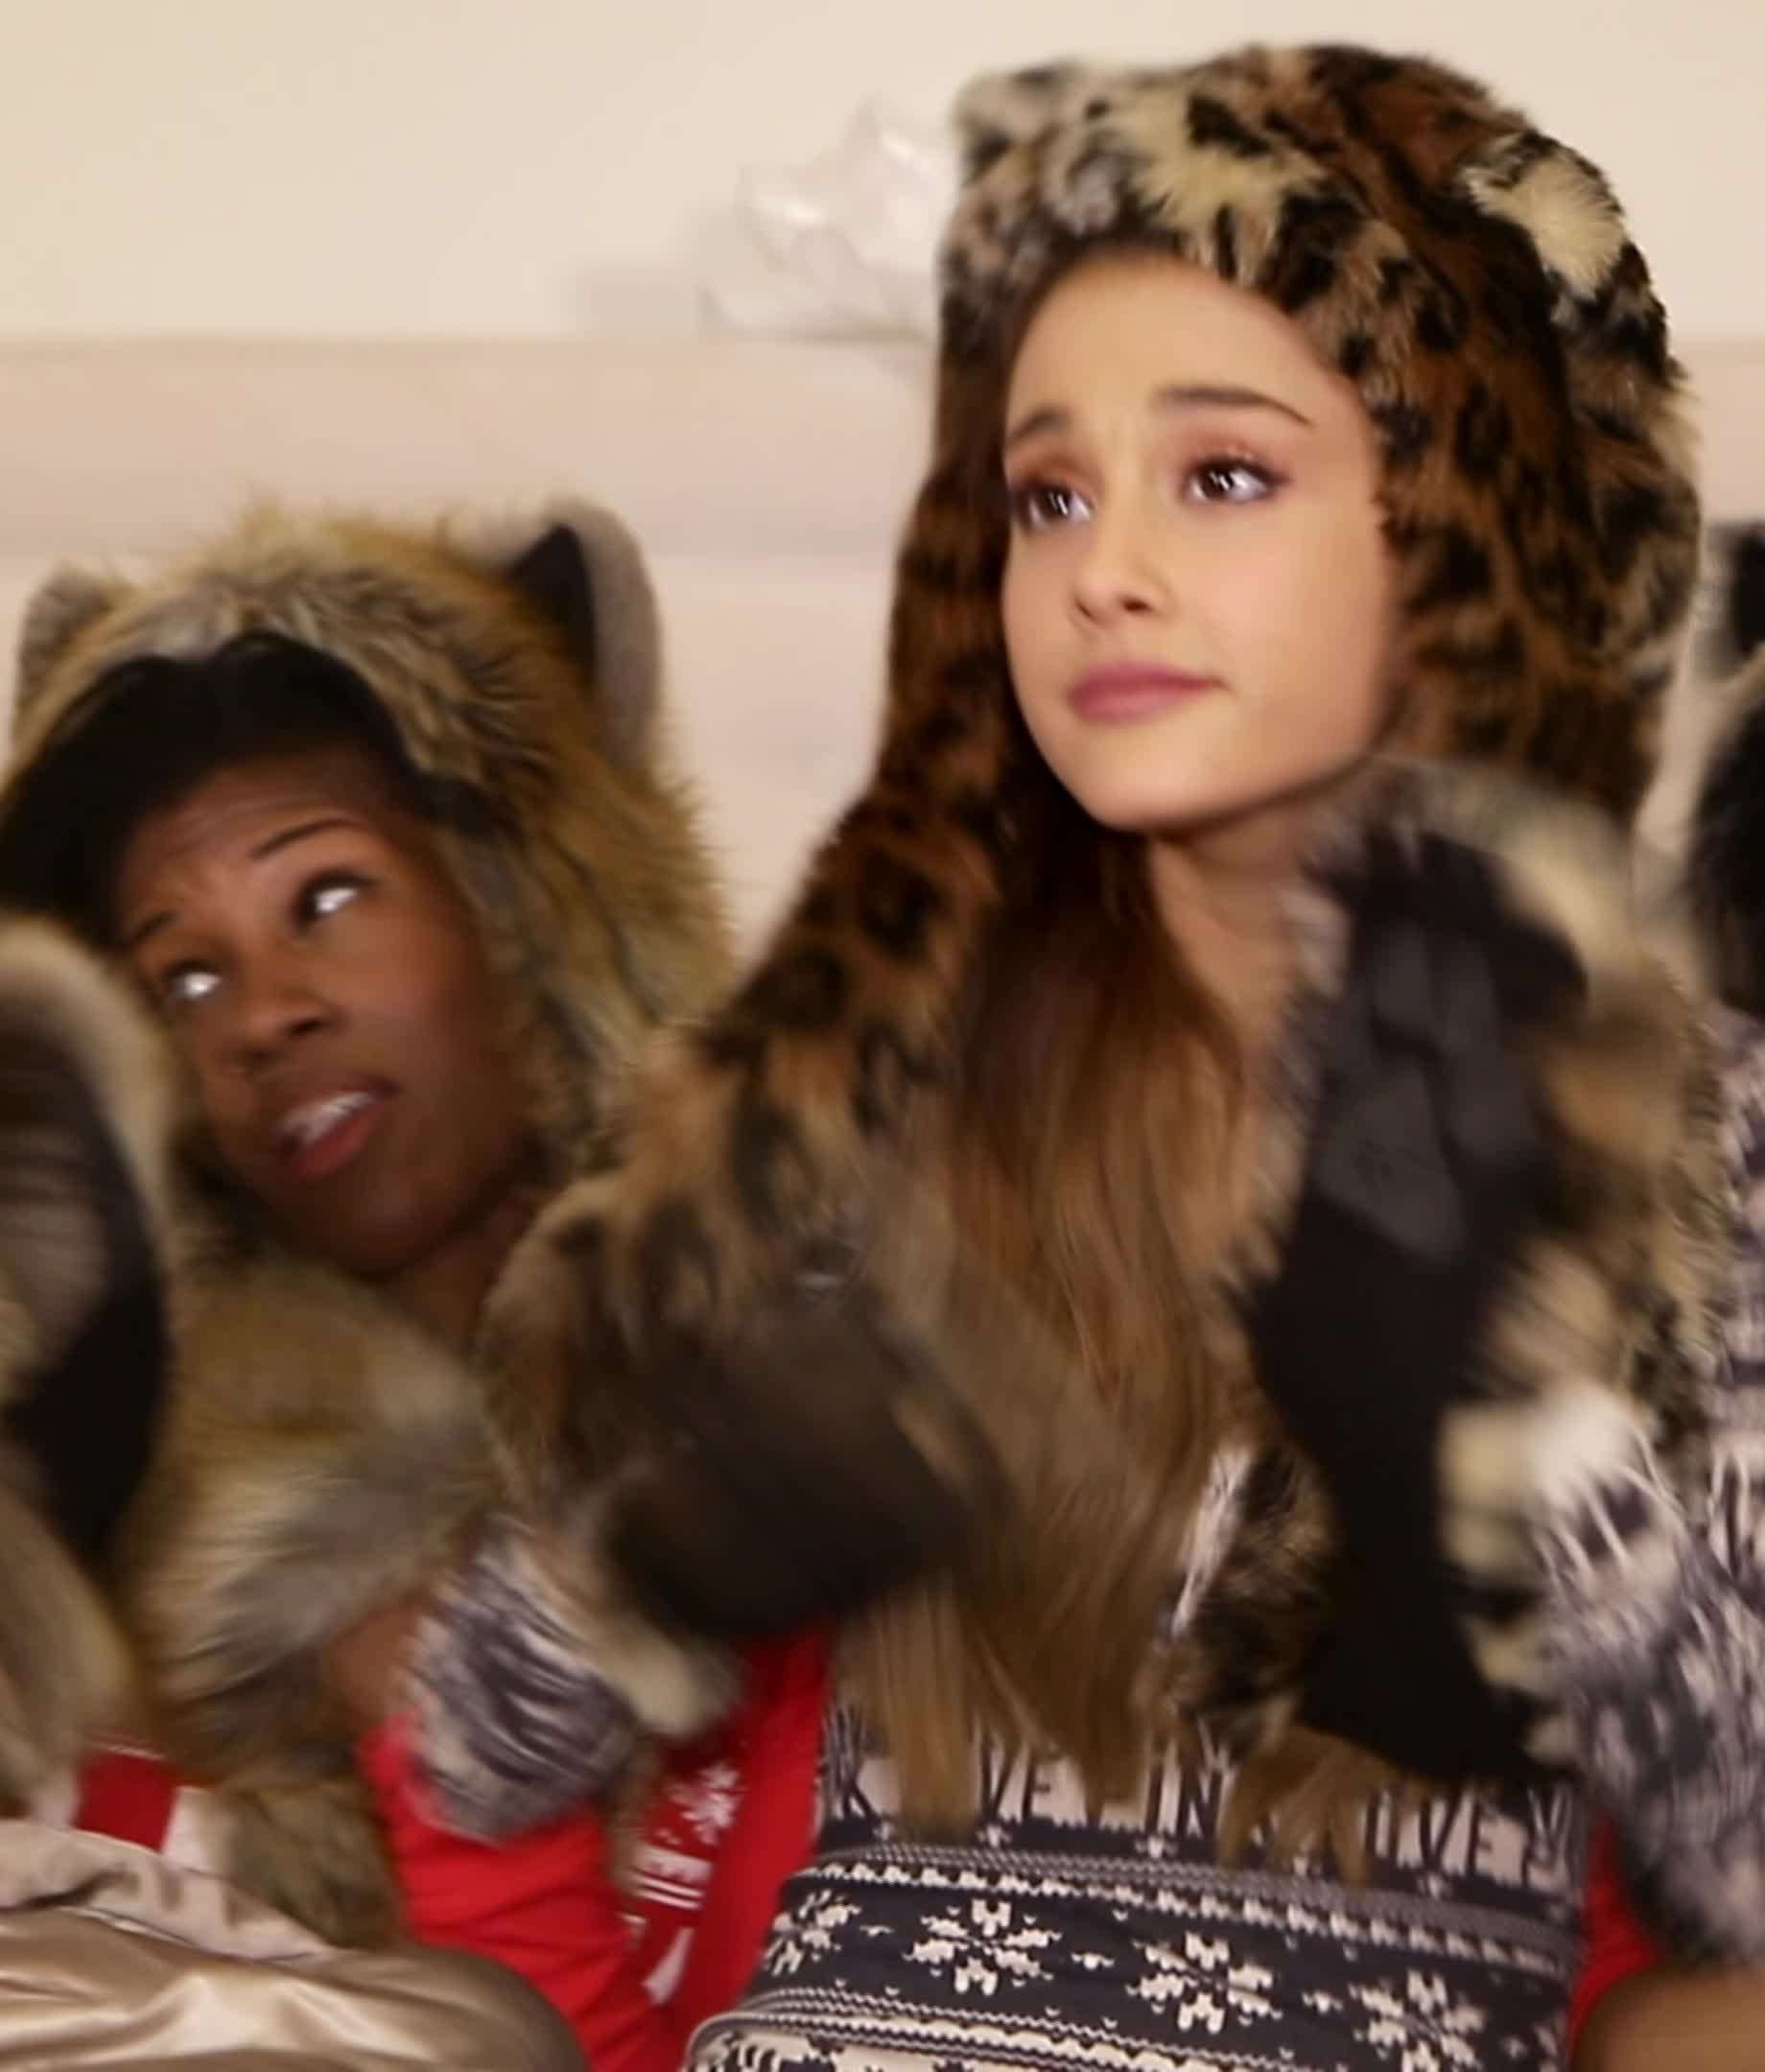 ariana grande, music video, santa tell me, UHD (1) - Santa Tell Me (MV) - 2014 GIFs